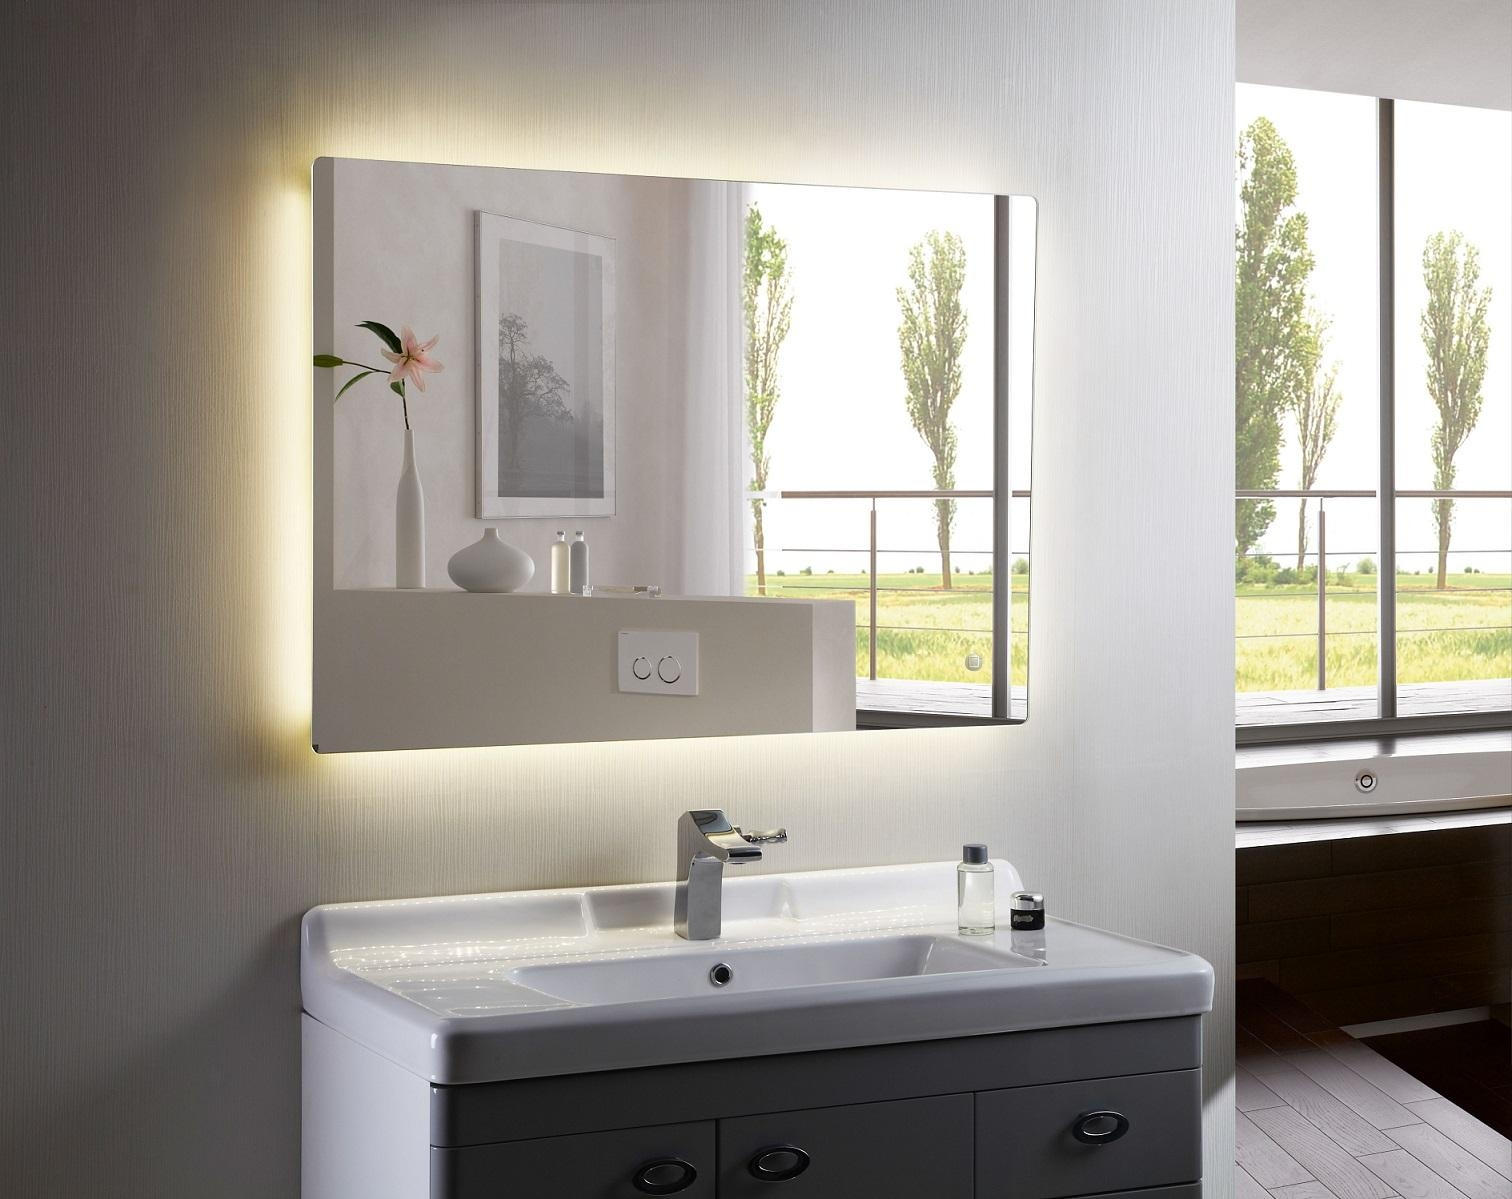 Backlit Bathroom Mirror Types Home Ideas Collection Prepare With Light Up Mirrors